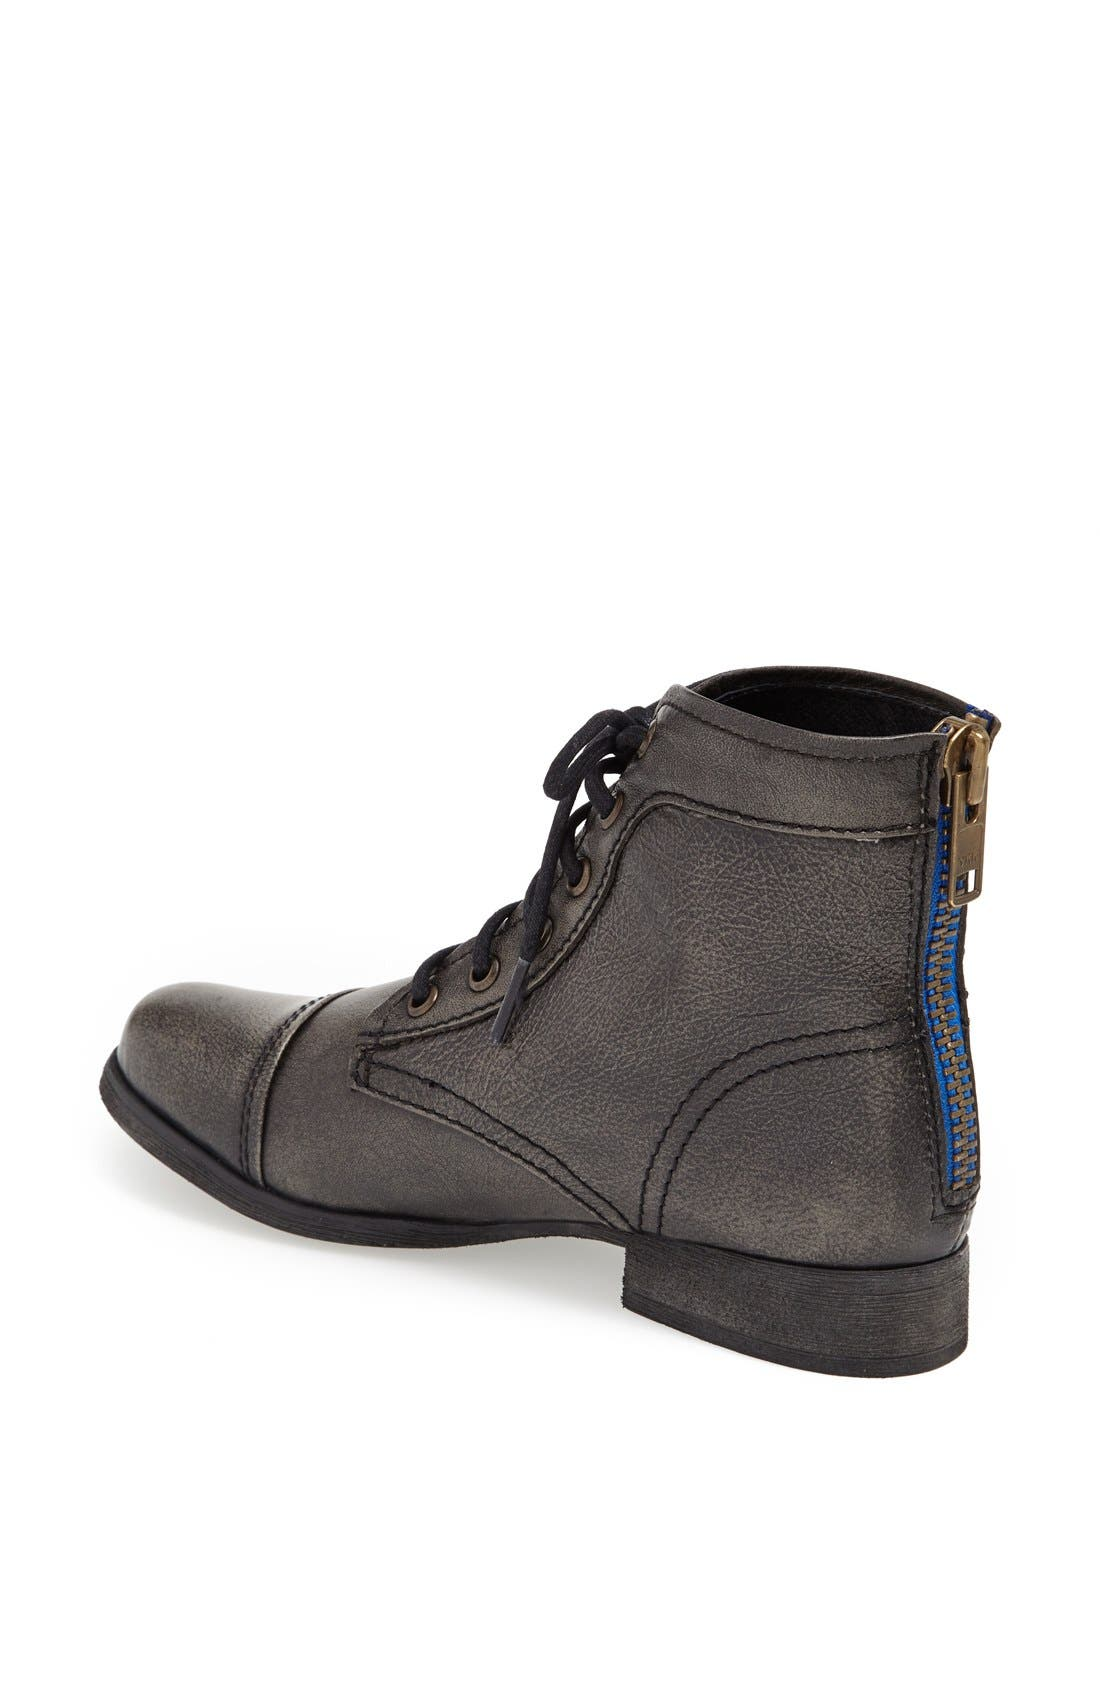 Alternate Image 2  - Steve Madden 'Tuundra' Boot